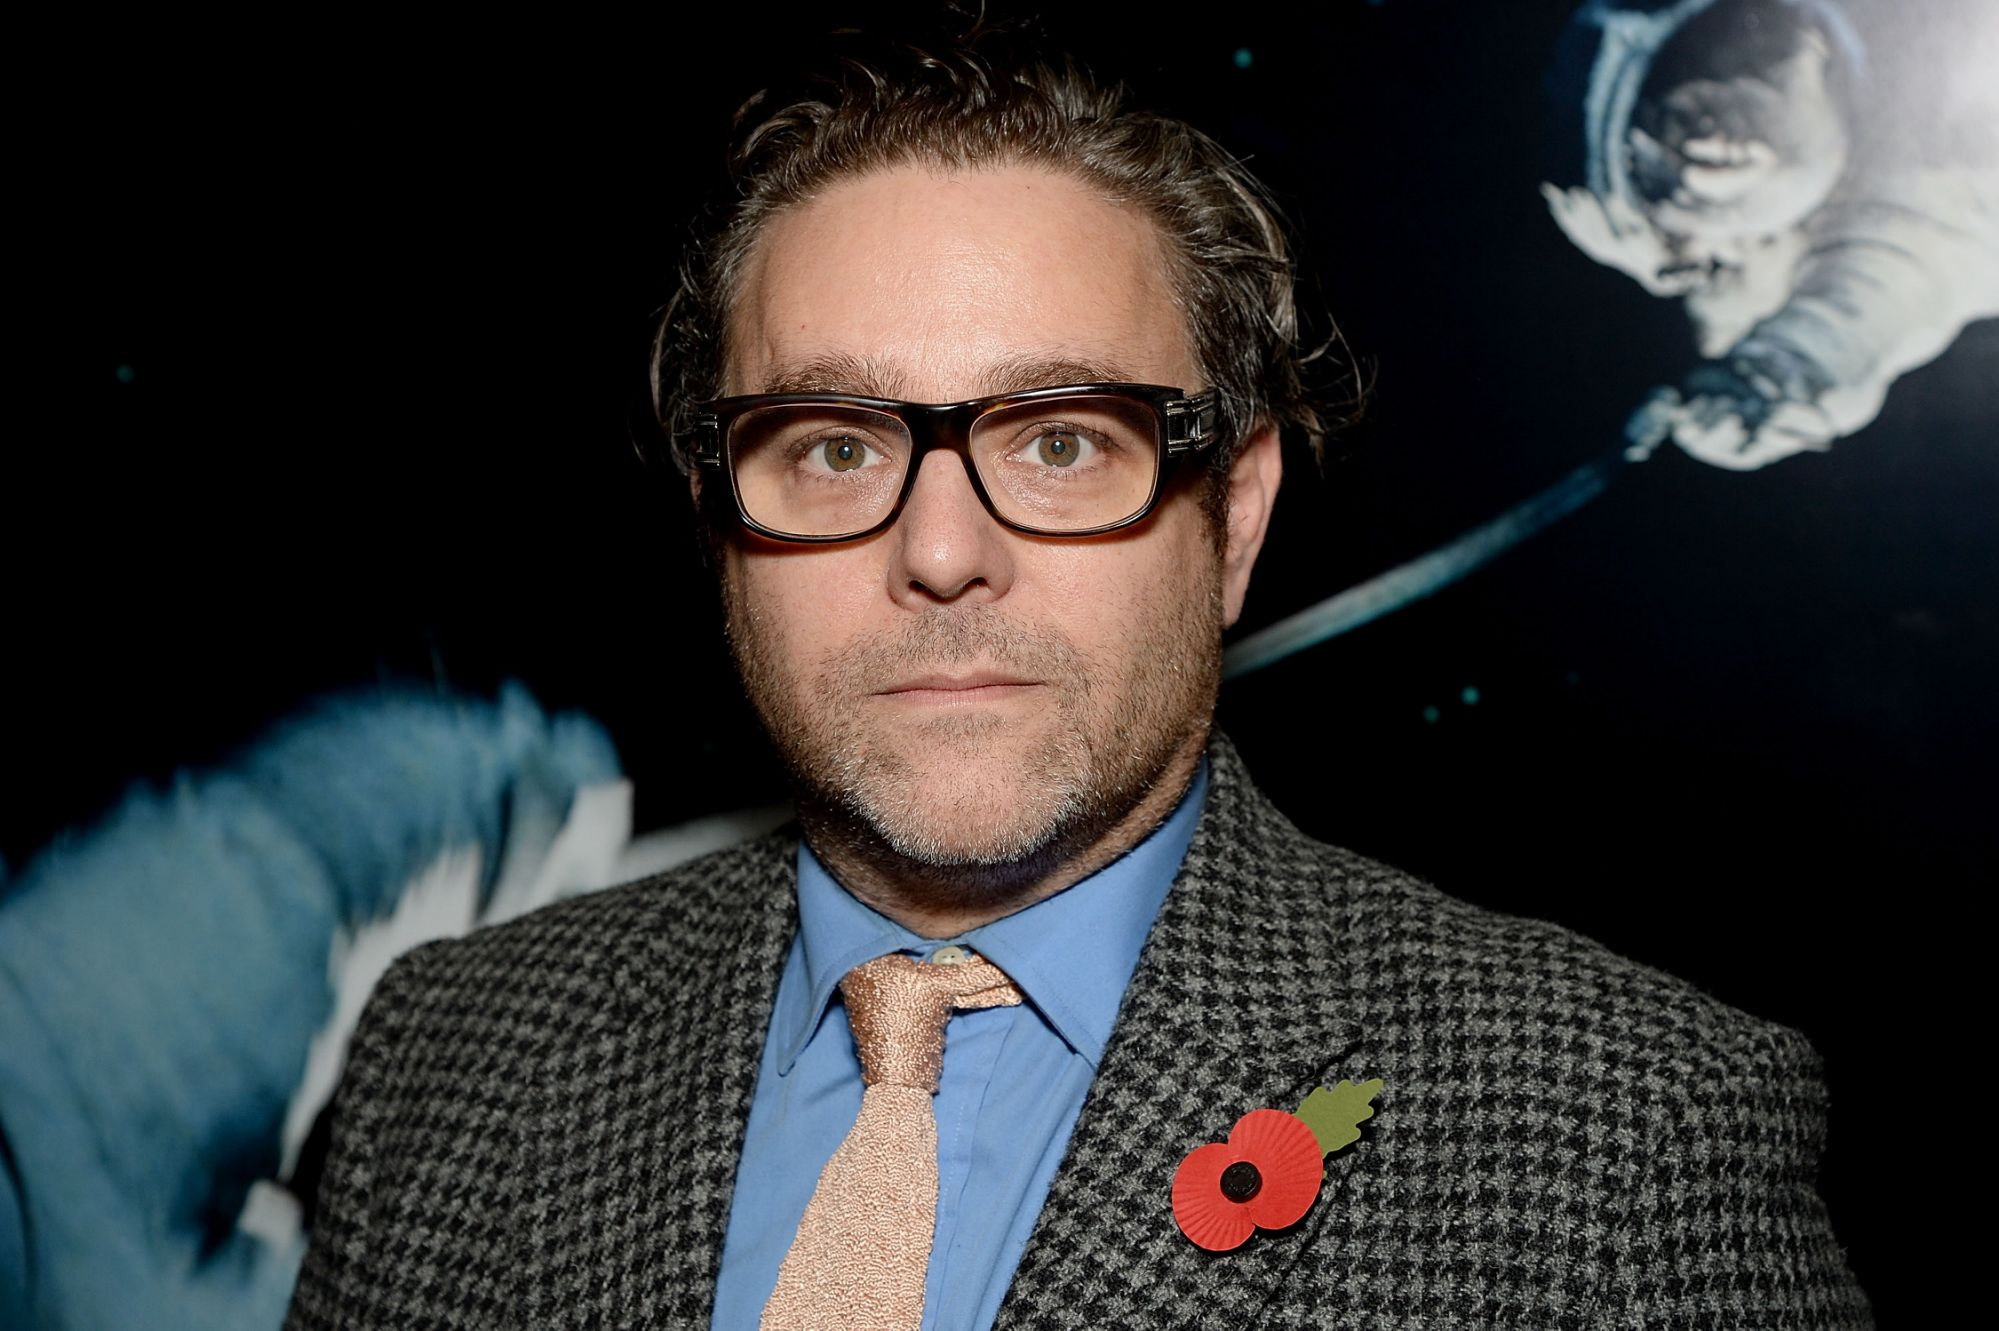 Andy Nyman's lost gem 'The Glass Man' lands NINE years after its premiere: 'It obtained tangled in apt nonsense' (engaging)